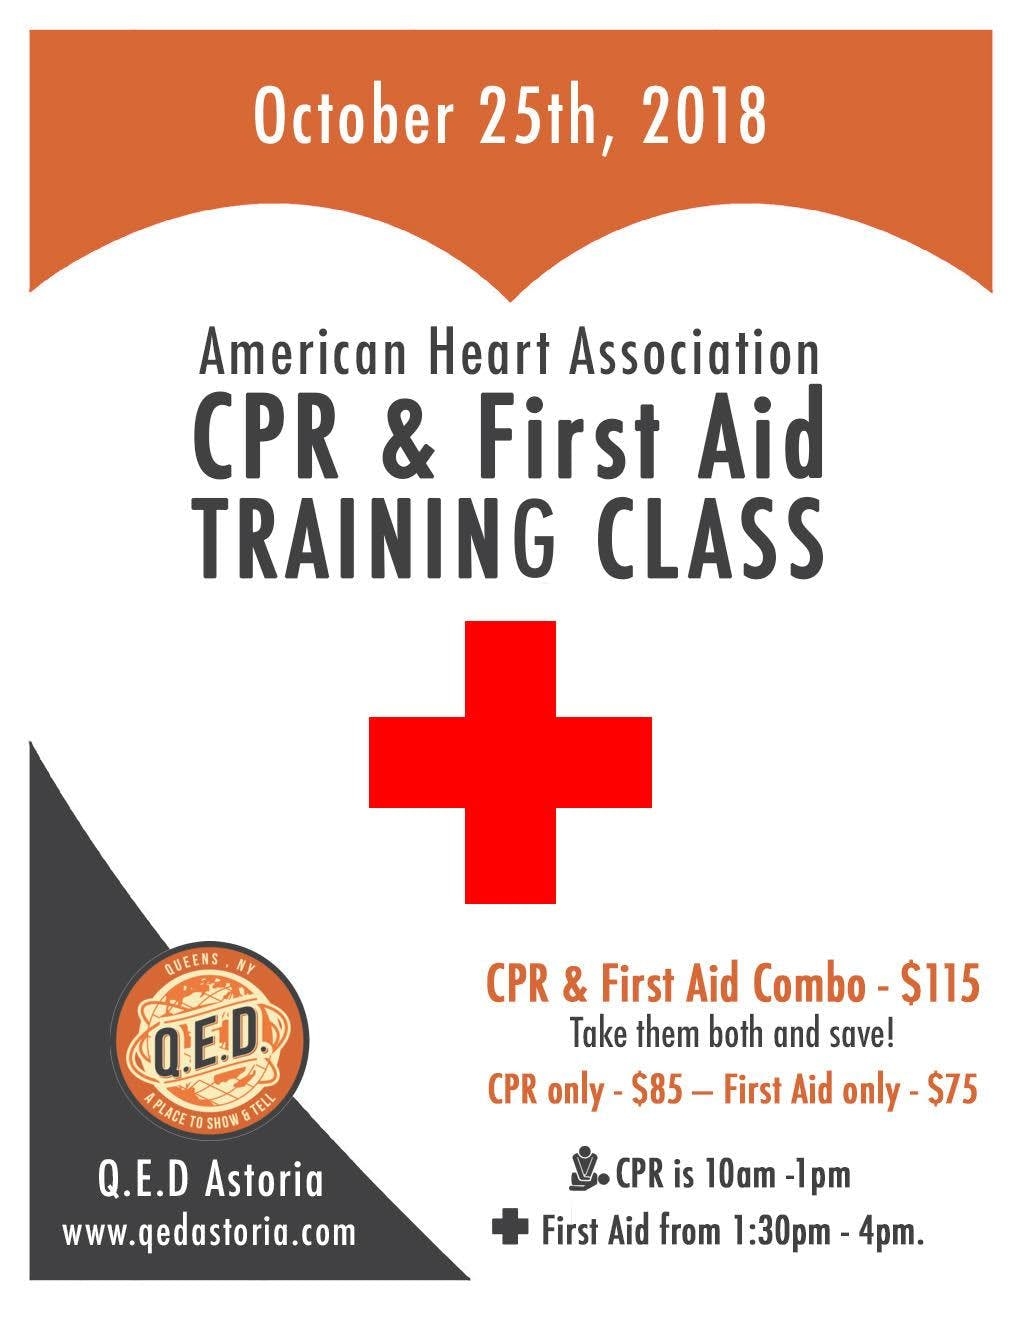 American Heart Association Cpr First Aid Training Class At Qed